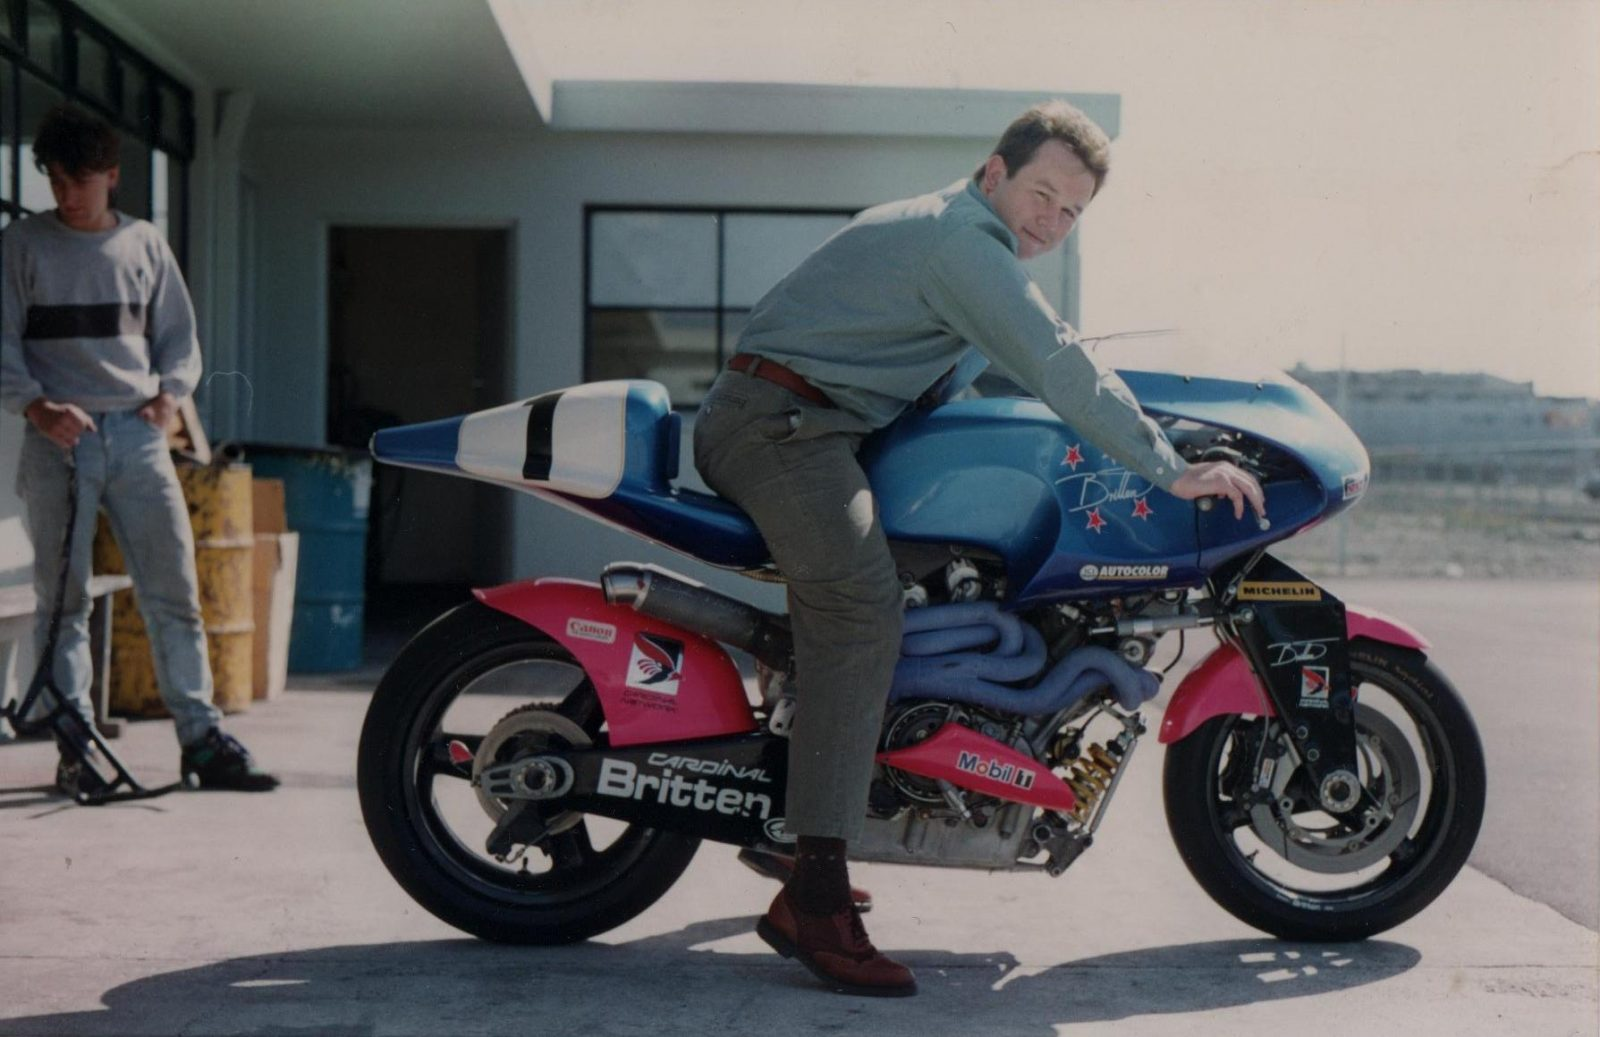 26 Pictures Unseen For Over 25 Years: A Visit To The Britten Motorcycle Workshop In 1993